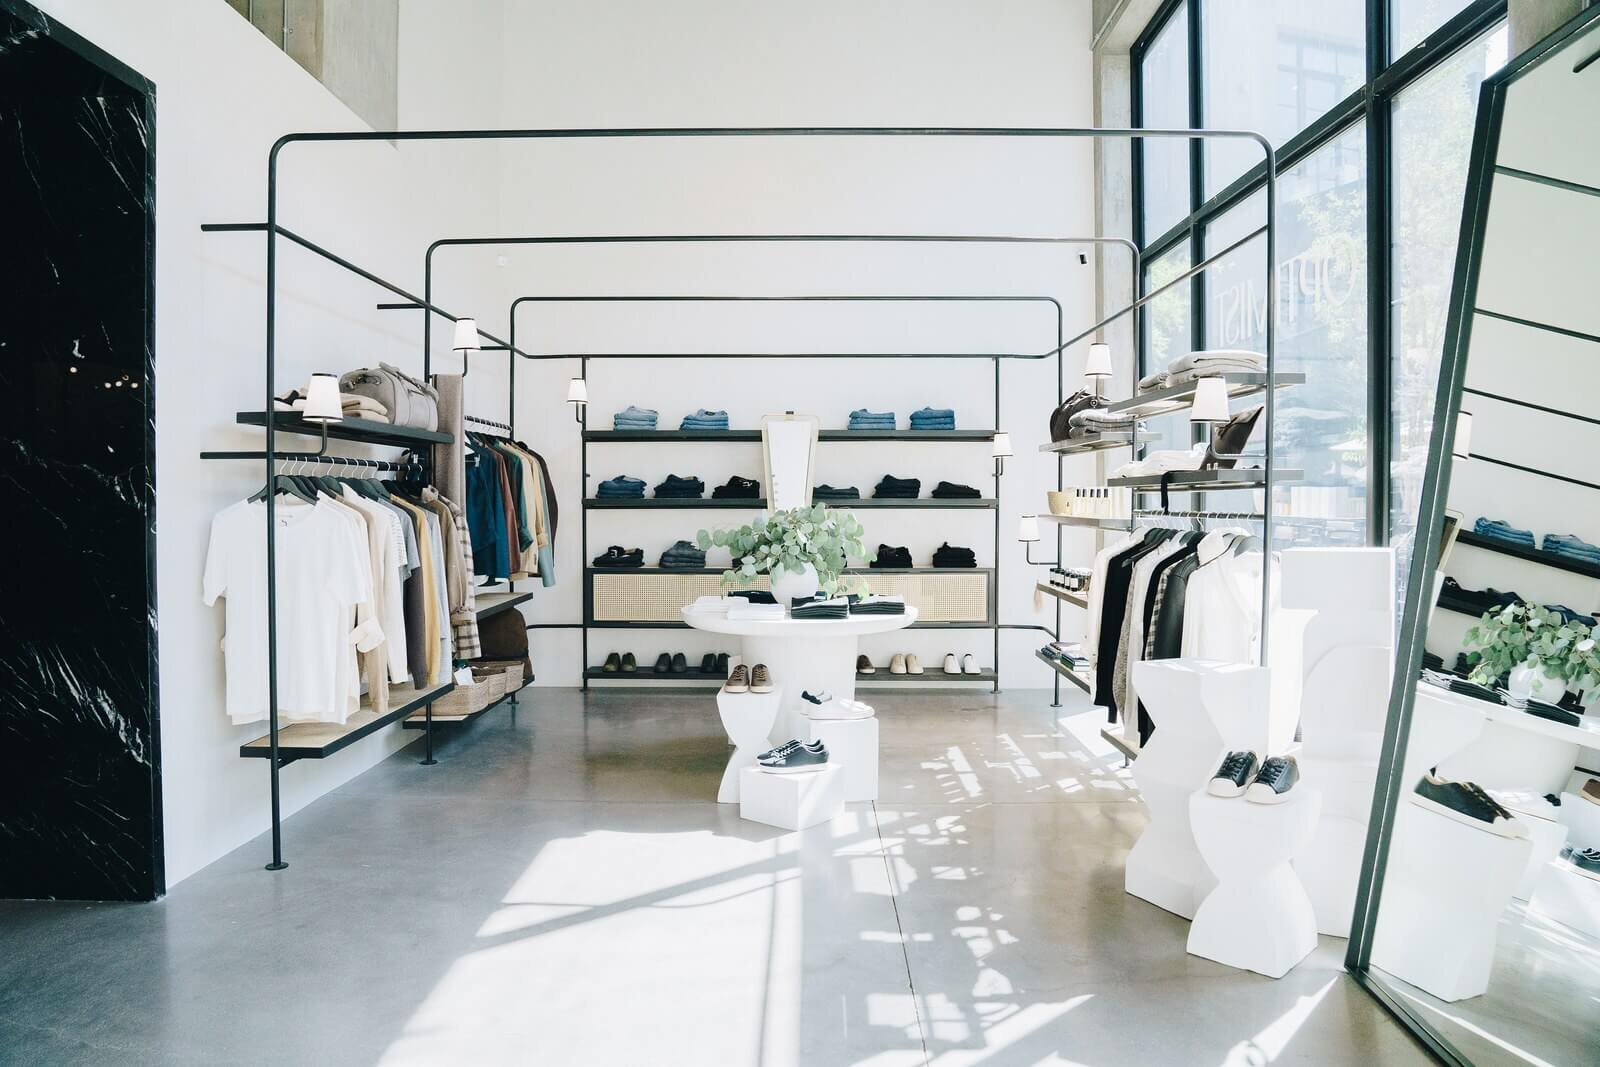 Jeremiah Brent Designs Eye-Catching Space for The Optimist Store - Architectural Digest